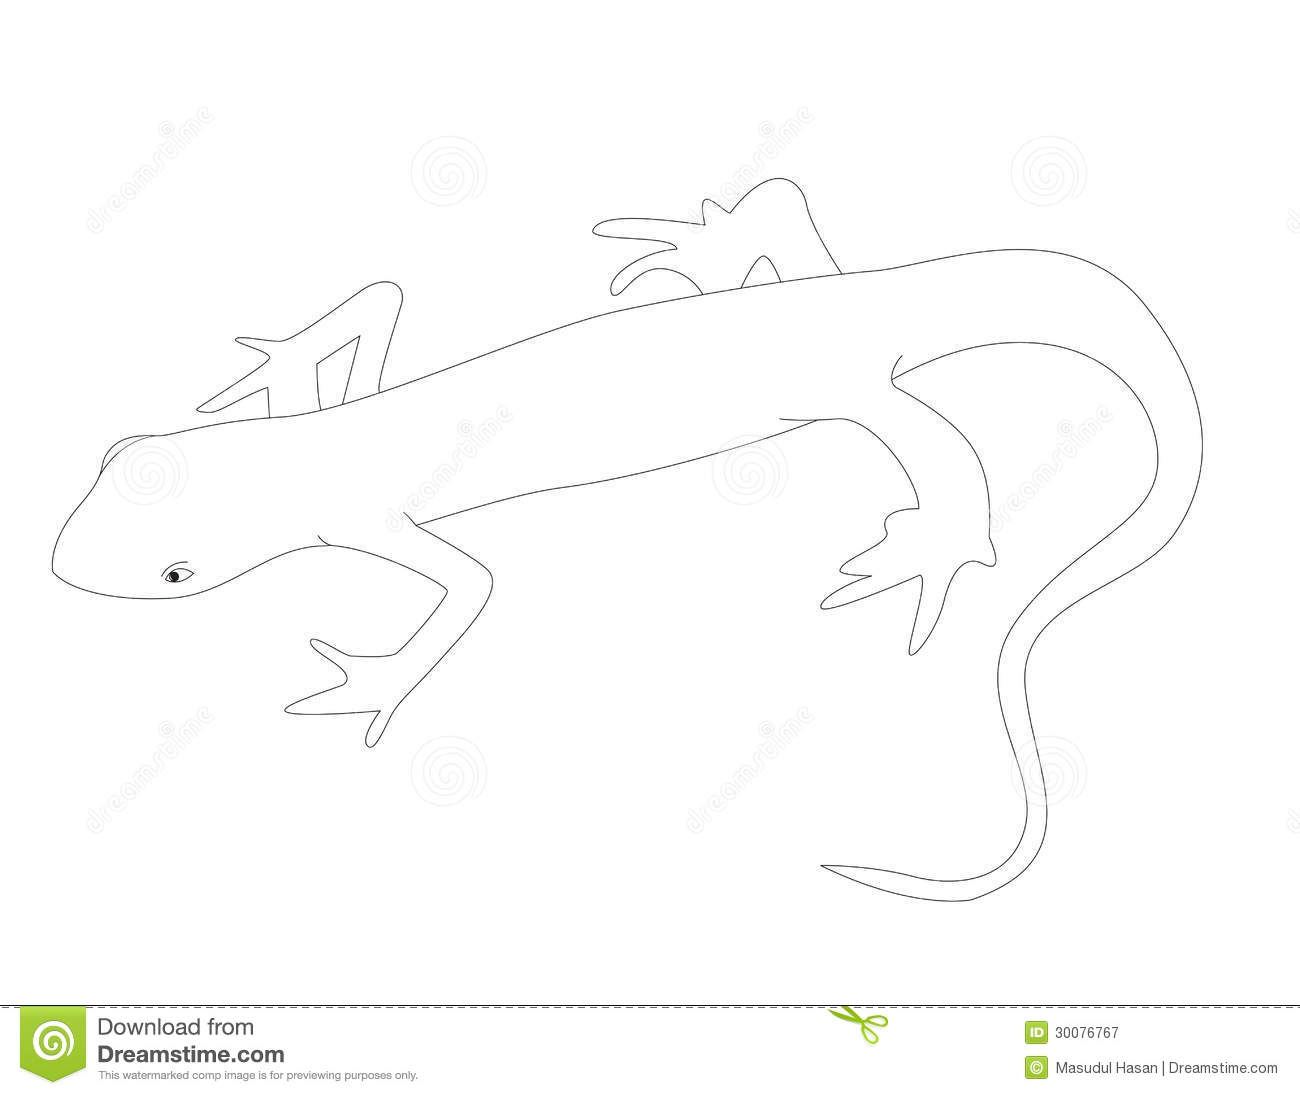 newt coloring pages - n for newt royalty free stock photography image 30076767